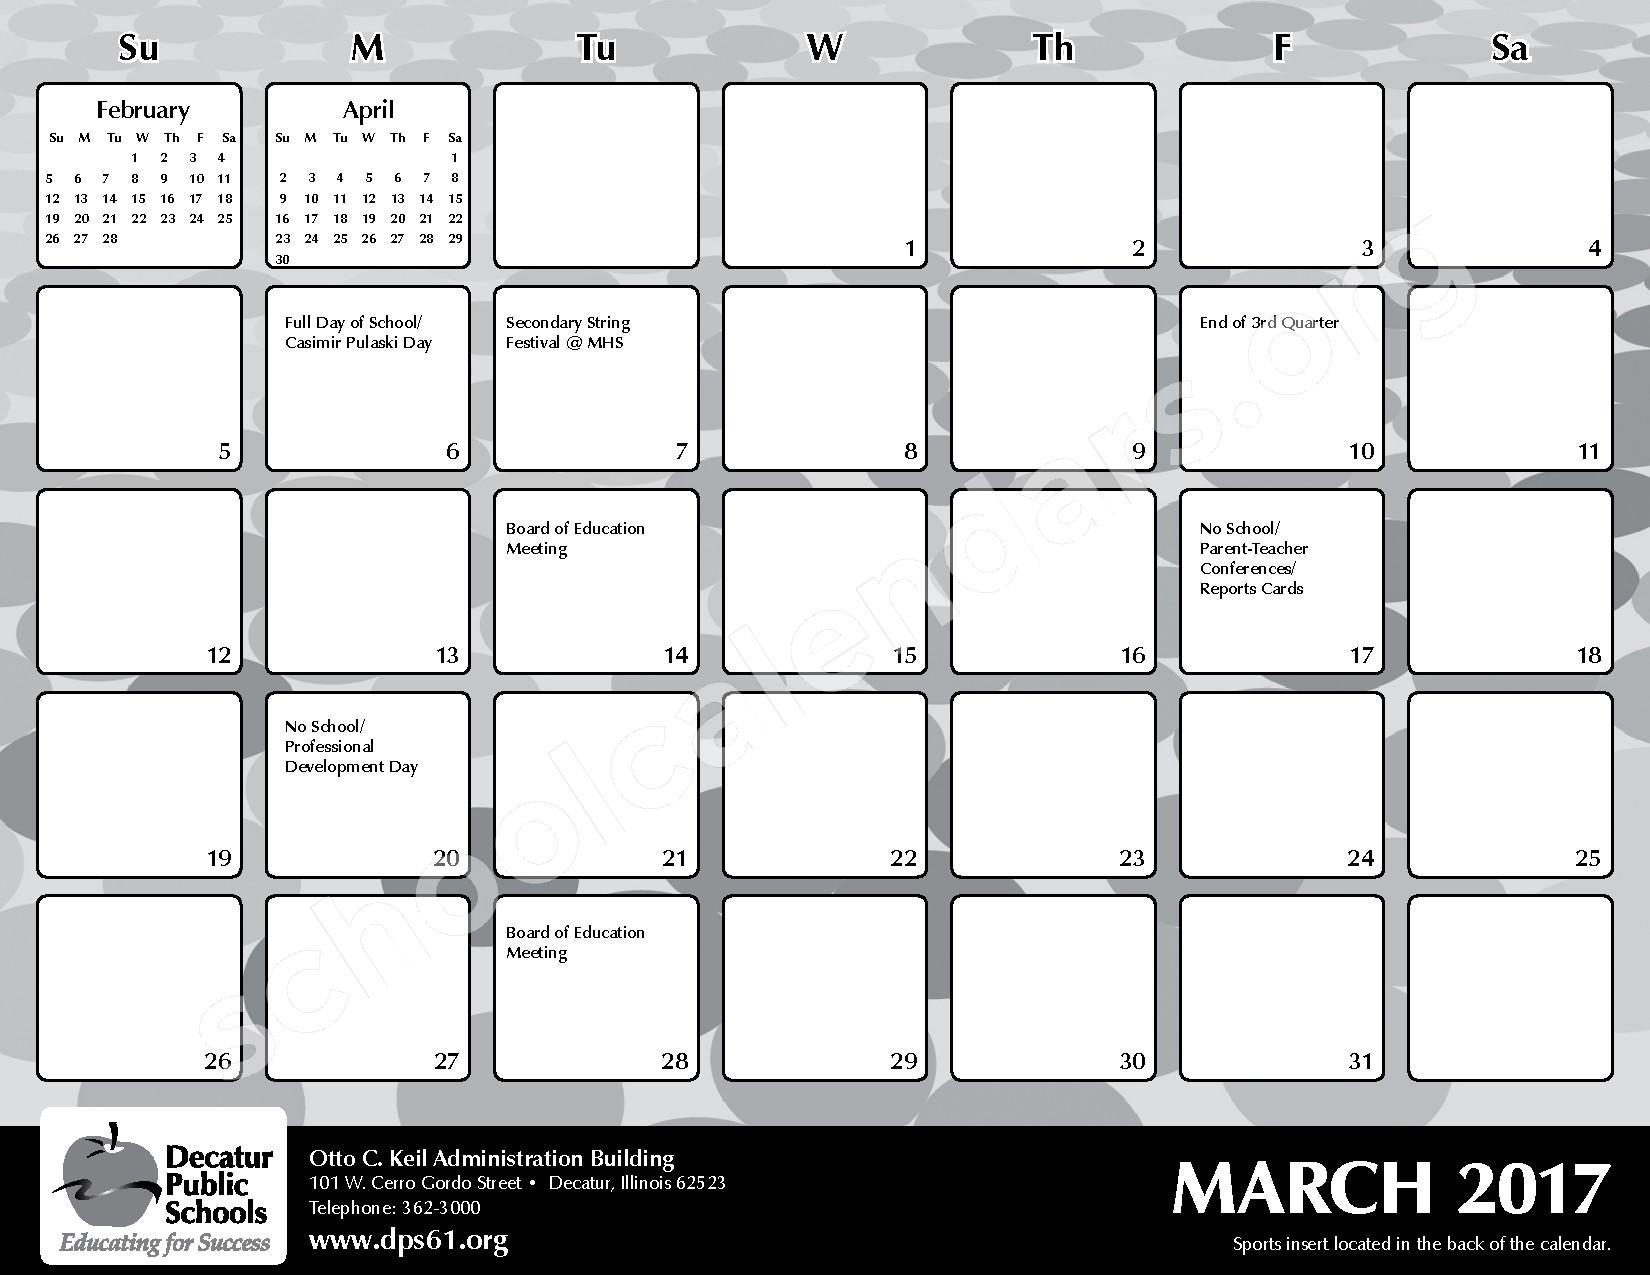 2016 - 2017 District Calendar – Michael E Baum Elementary School – page 19